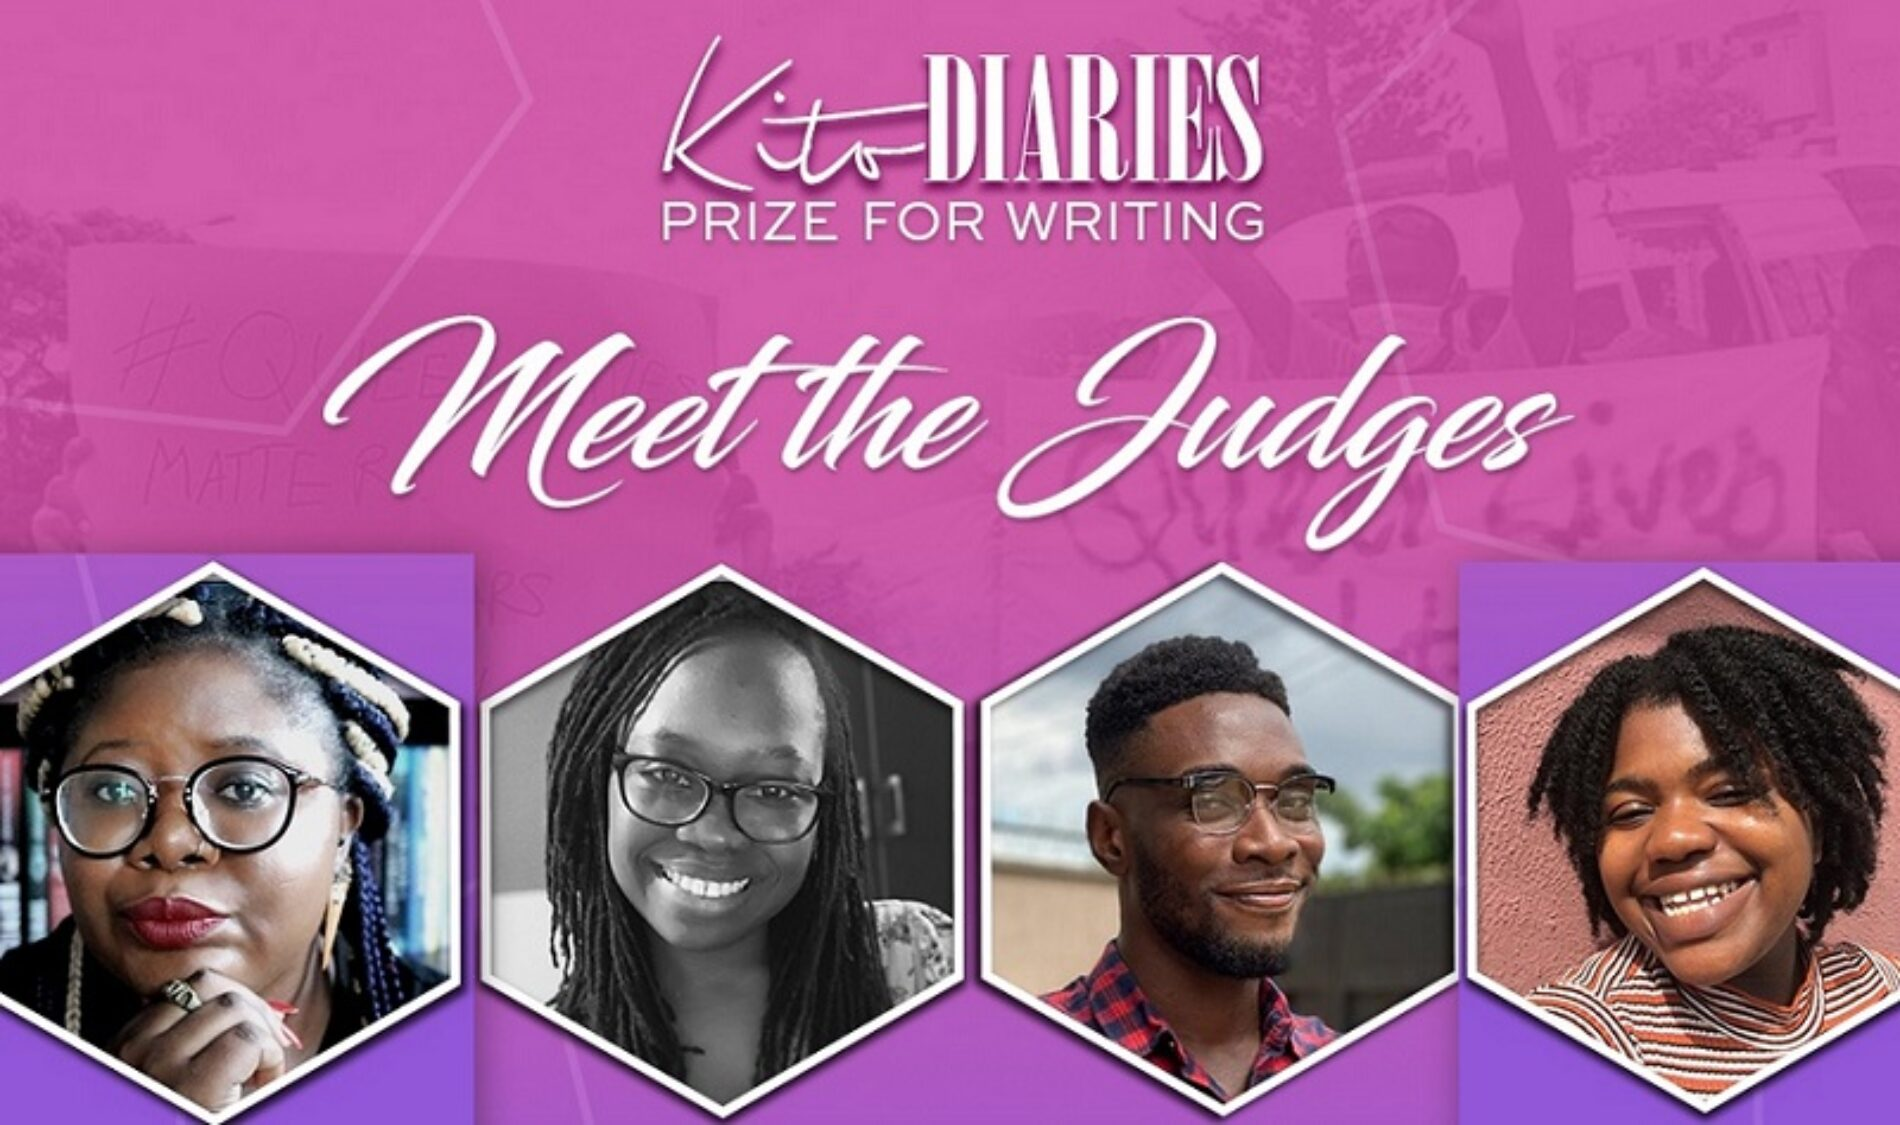 KITO DIARIES PRIZE FOR WRITING: MEET THE JUDGES